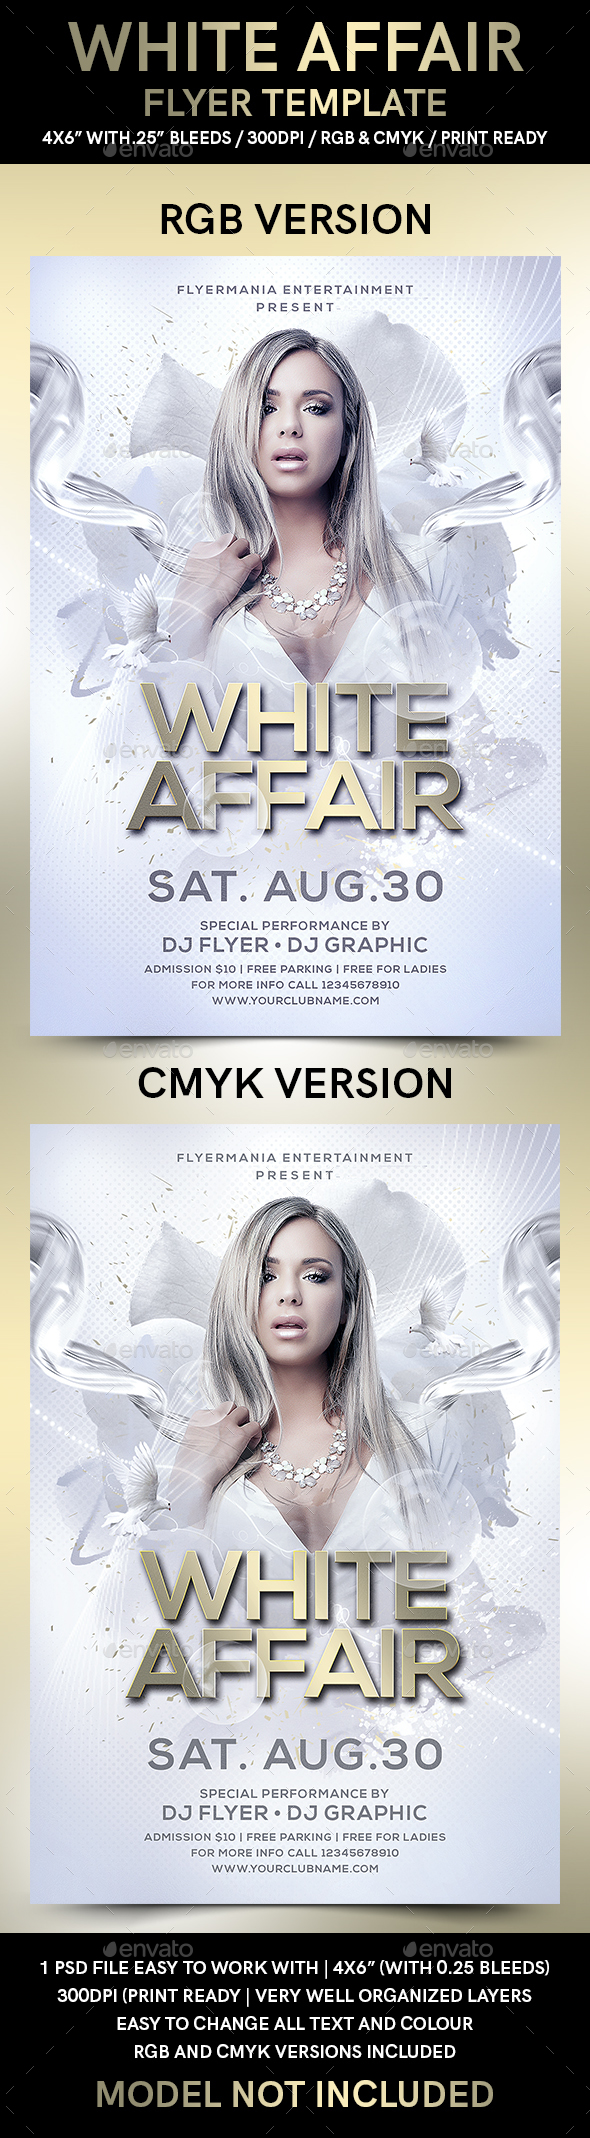 White Affair Flyer Template - Flyers Print Templates